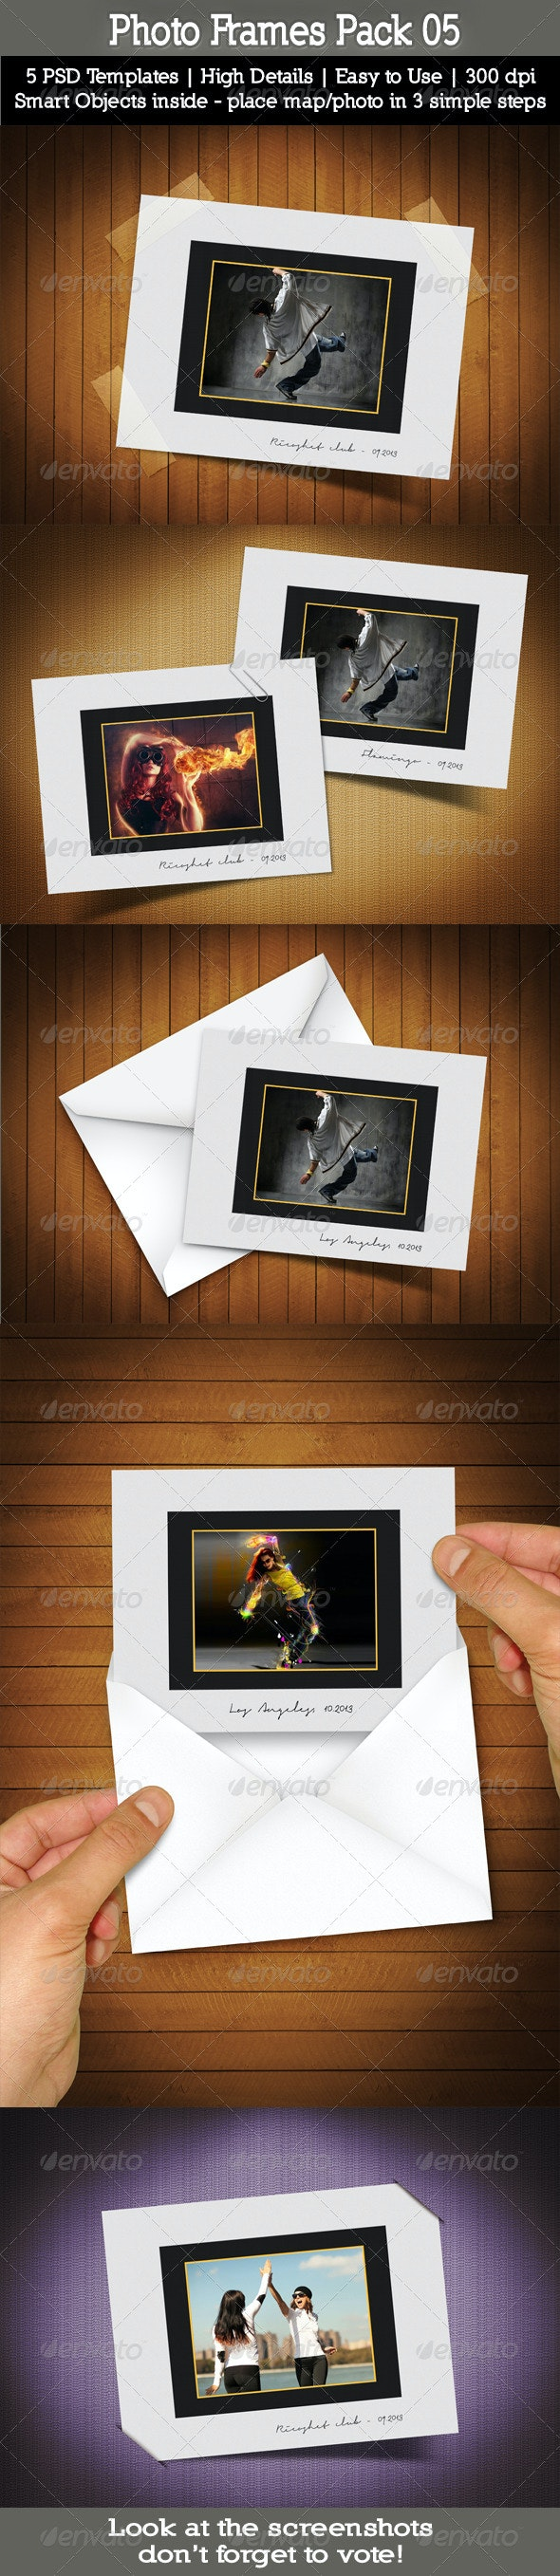 Photo Frames Pack 05 - Artistic Photo Templates